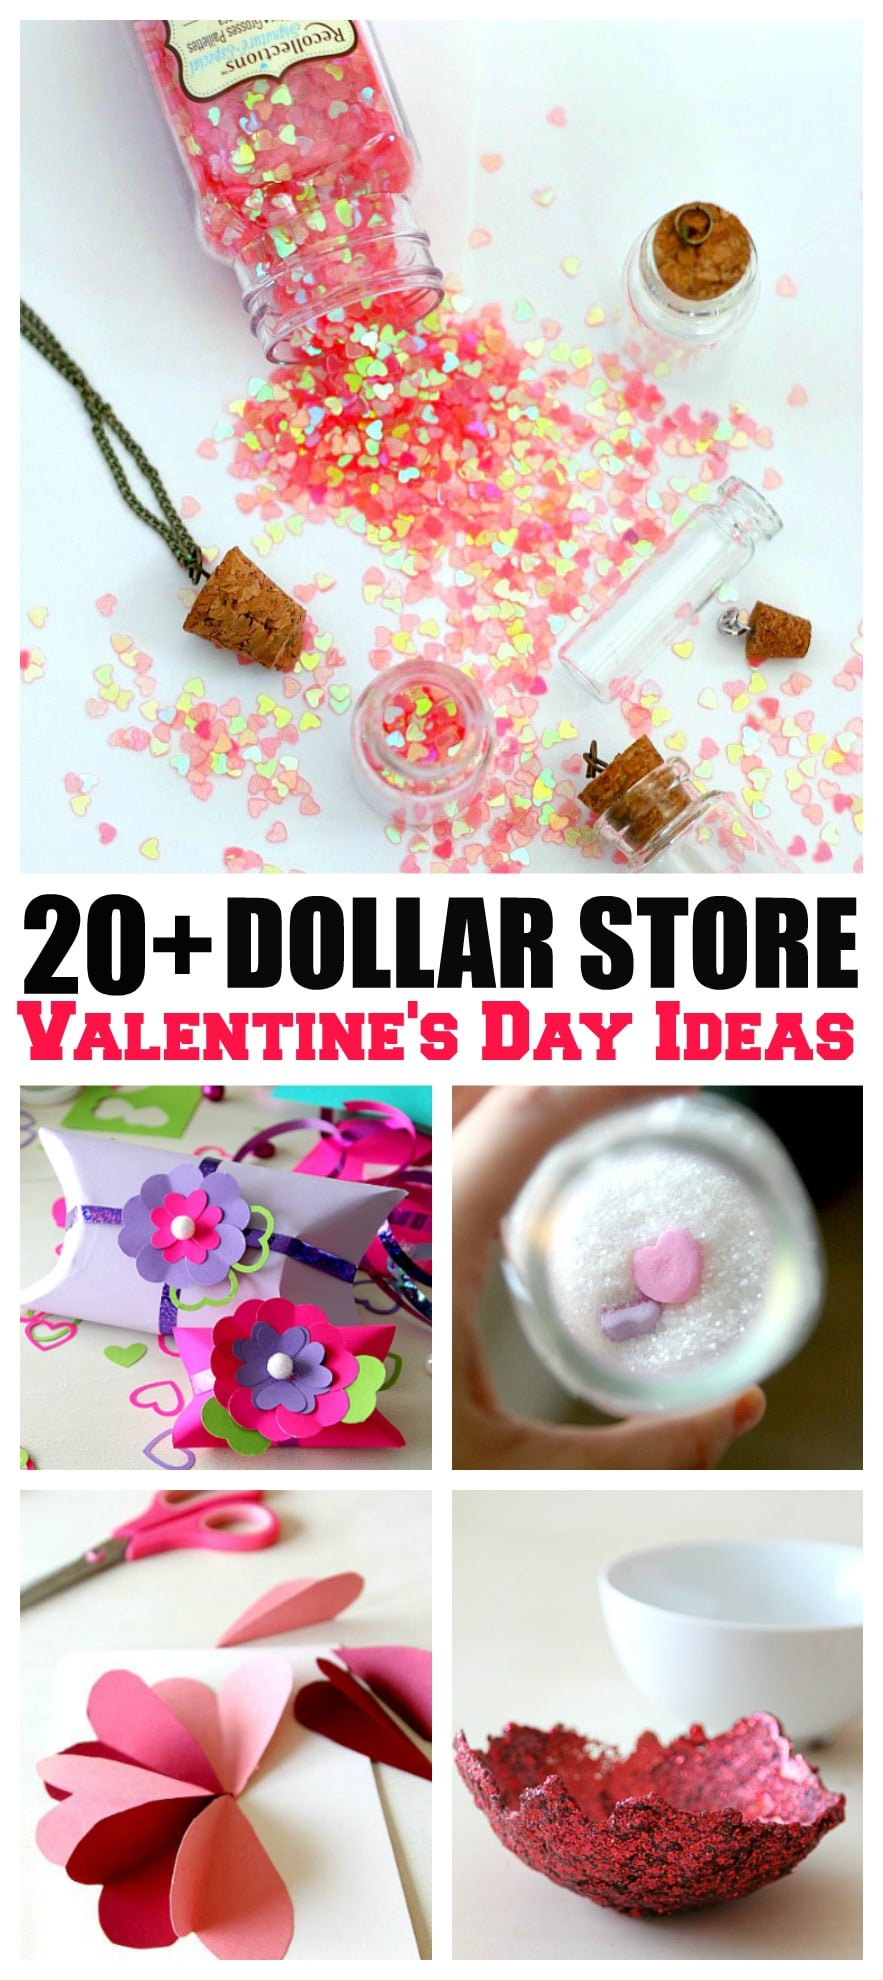 Dollar Store Valentines: Over 20 ways to inexpensively pass out Valentines, Gifts, or create home decor from dollar bins